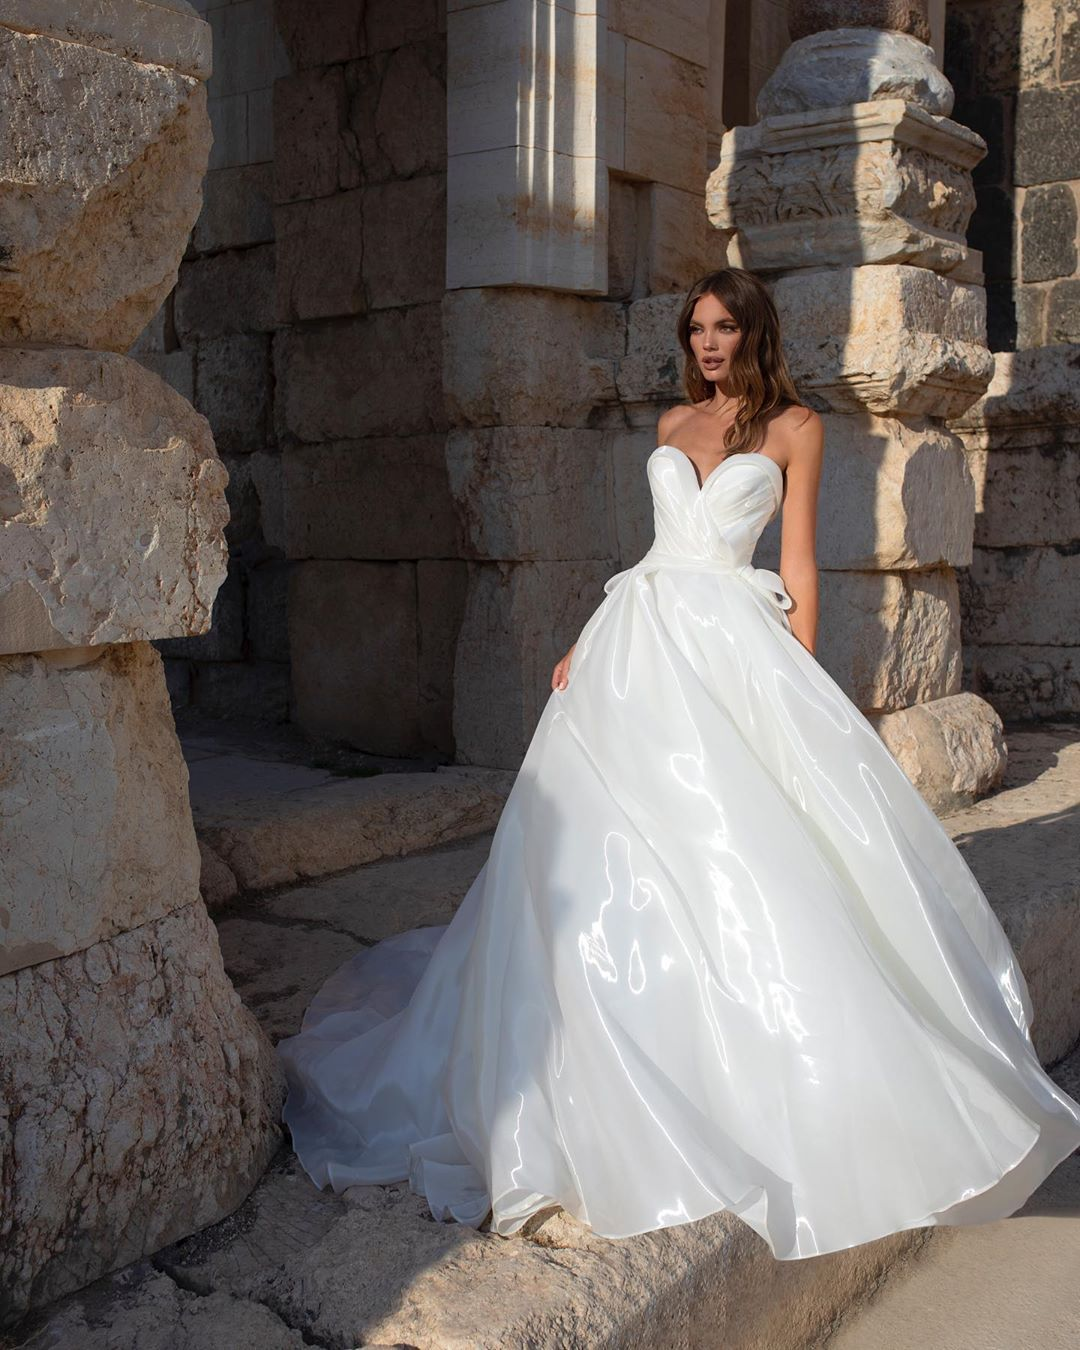 Pnina Tornai On Instagram New Fabric For A New Collection Are You Loving This Liquid Org Pnina Tornai Wedding Dress Ball Gowns Wedding Pnina Wedding Dresses